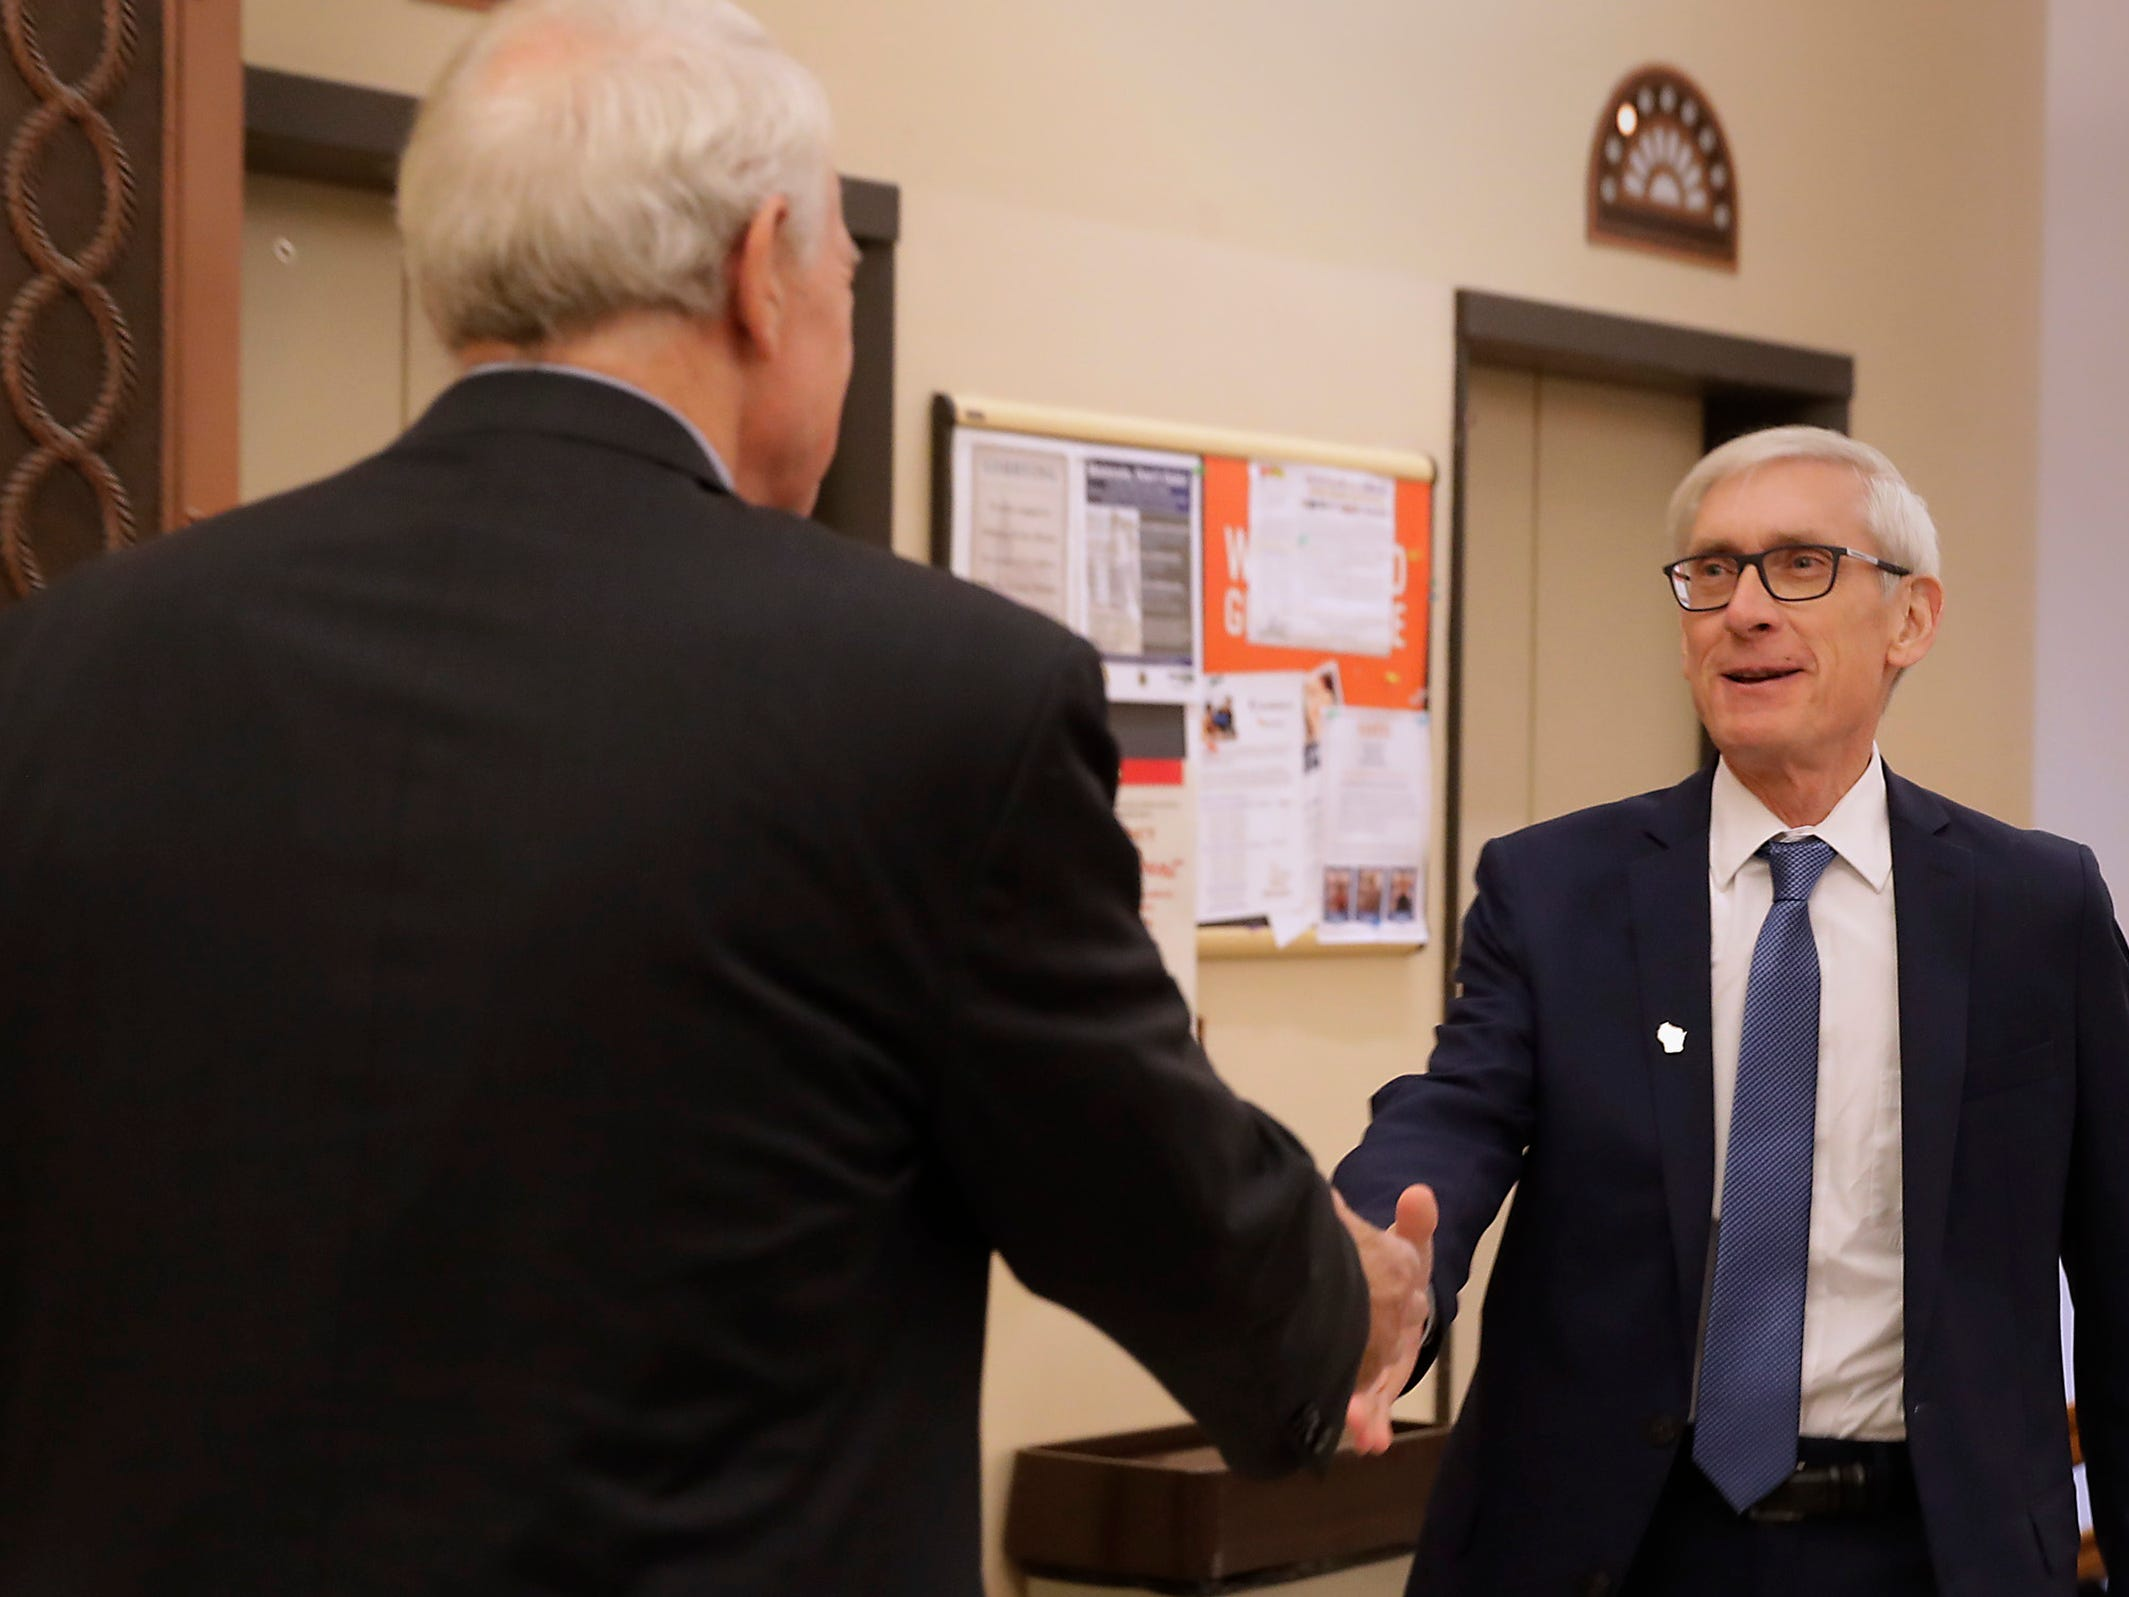 Mayor Tom Barrett (left) welcomes Gov.-elect Tony Evers to City Hall on Tuesday, Dec. 4, 2018.